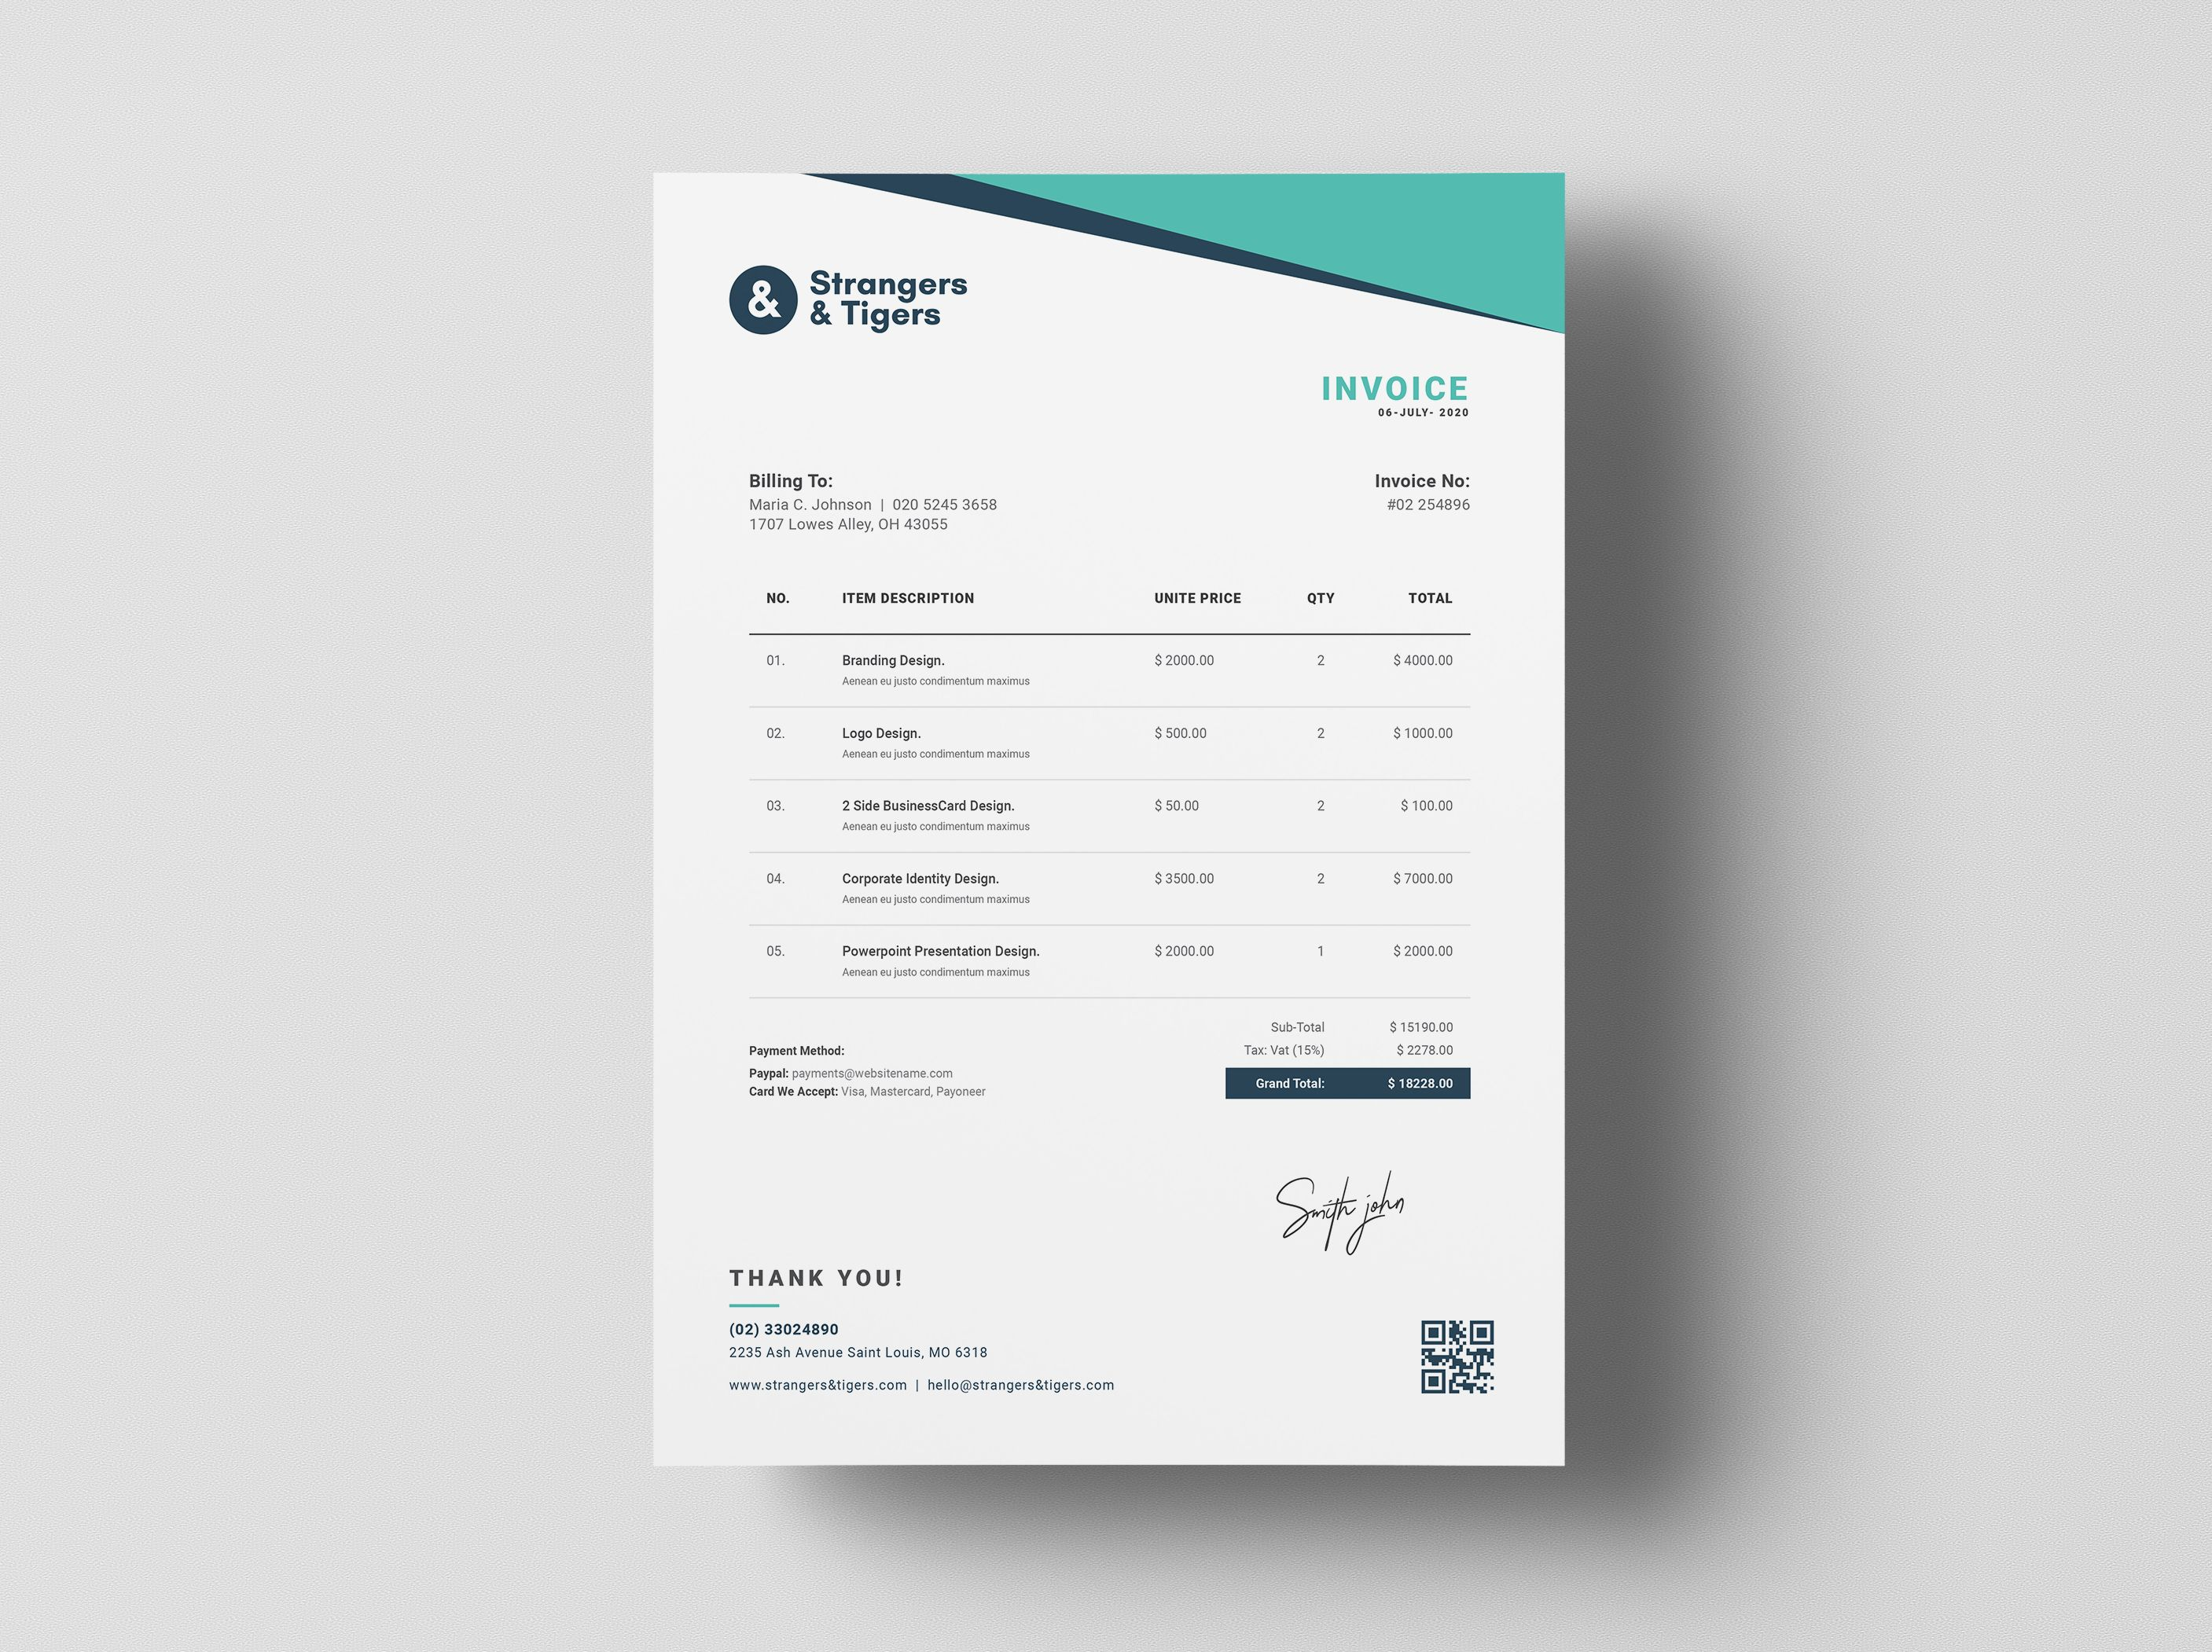 Exceedcreatives I Will Design Auto Calculated Invoice In Excel For 15 On Fiverr Com Invoice Design Invoice Layout Business Card Design